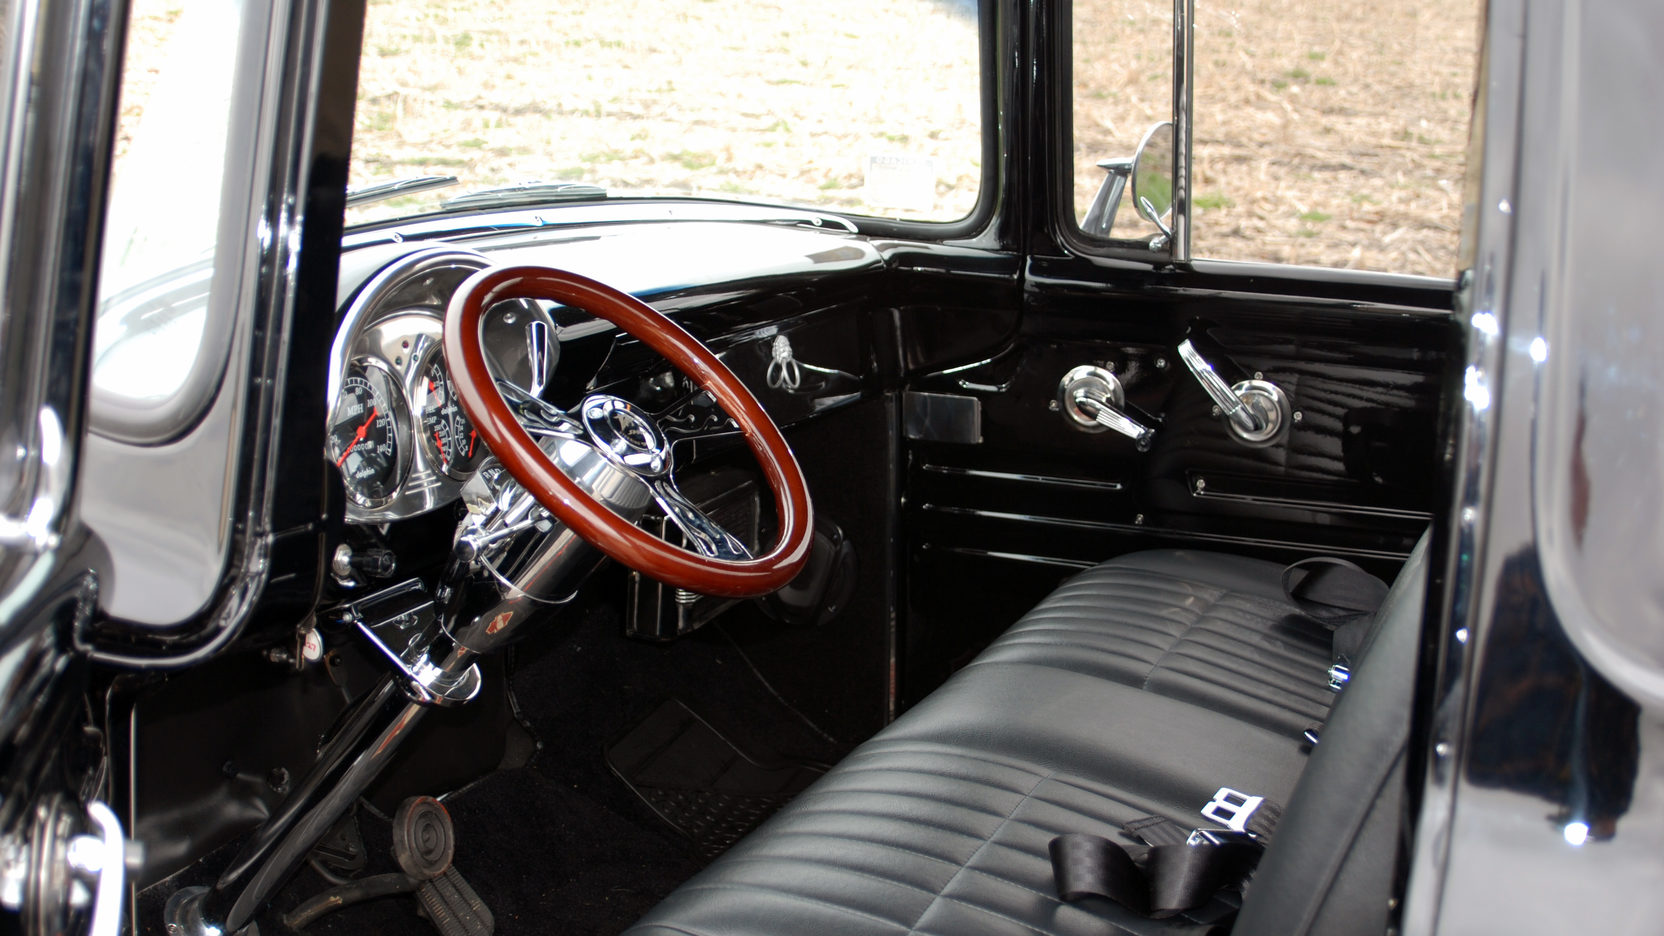 20 1956 f100 power steering conversion pictures and ideas on meta